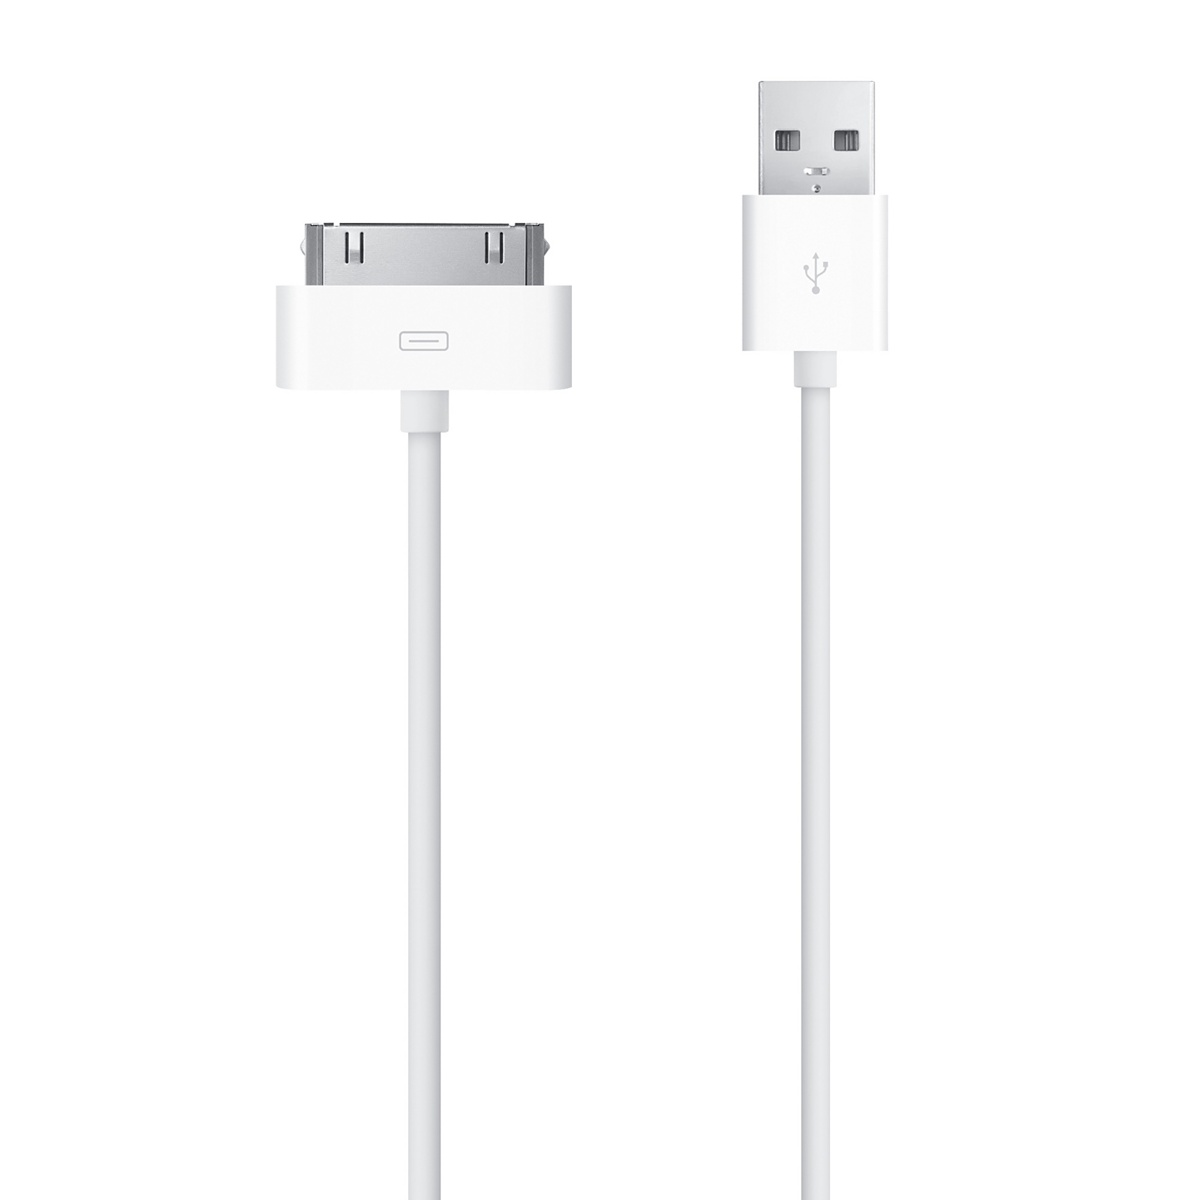 30 Pin USB Cable - 3 ft.